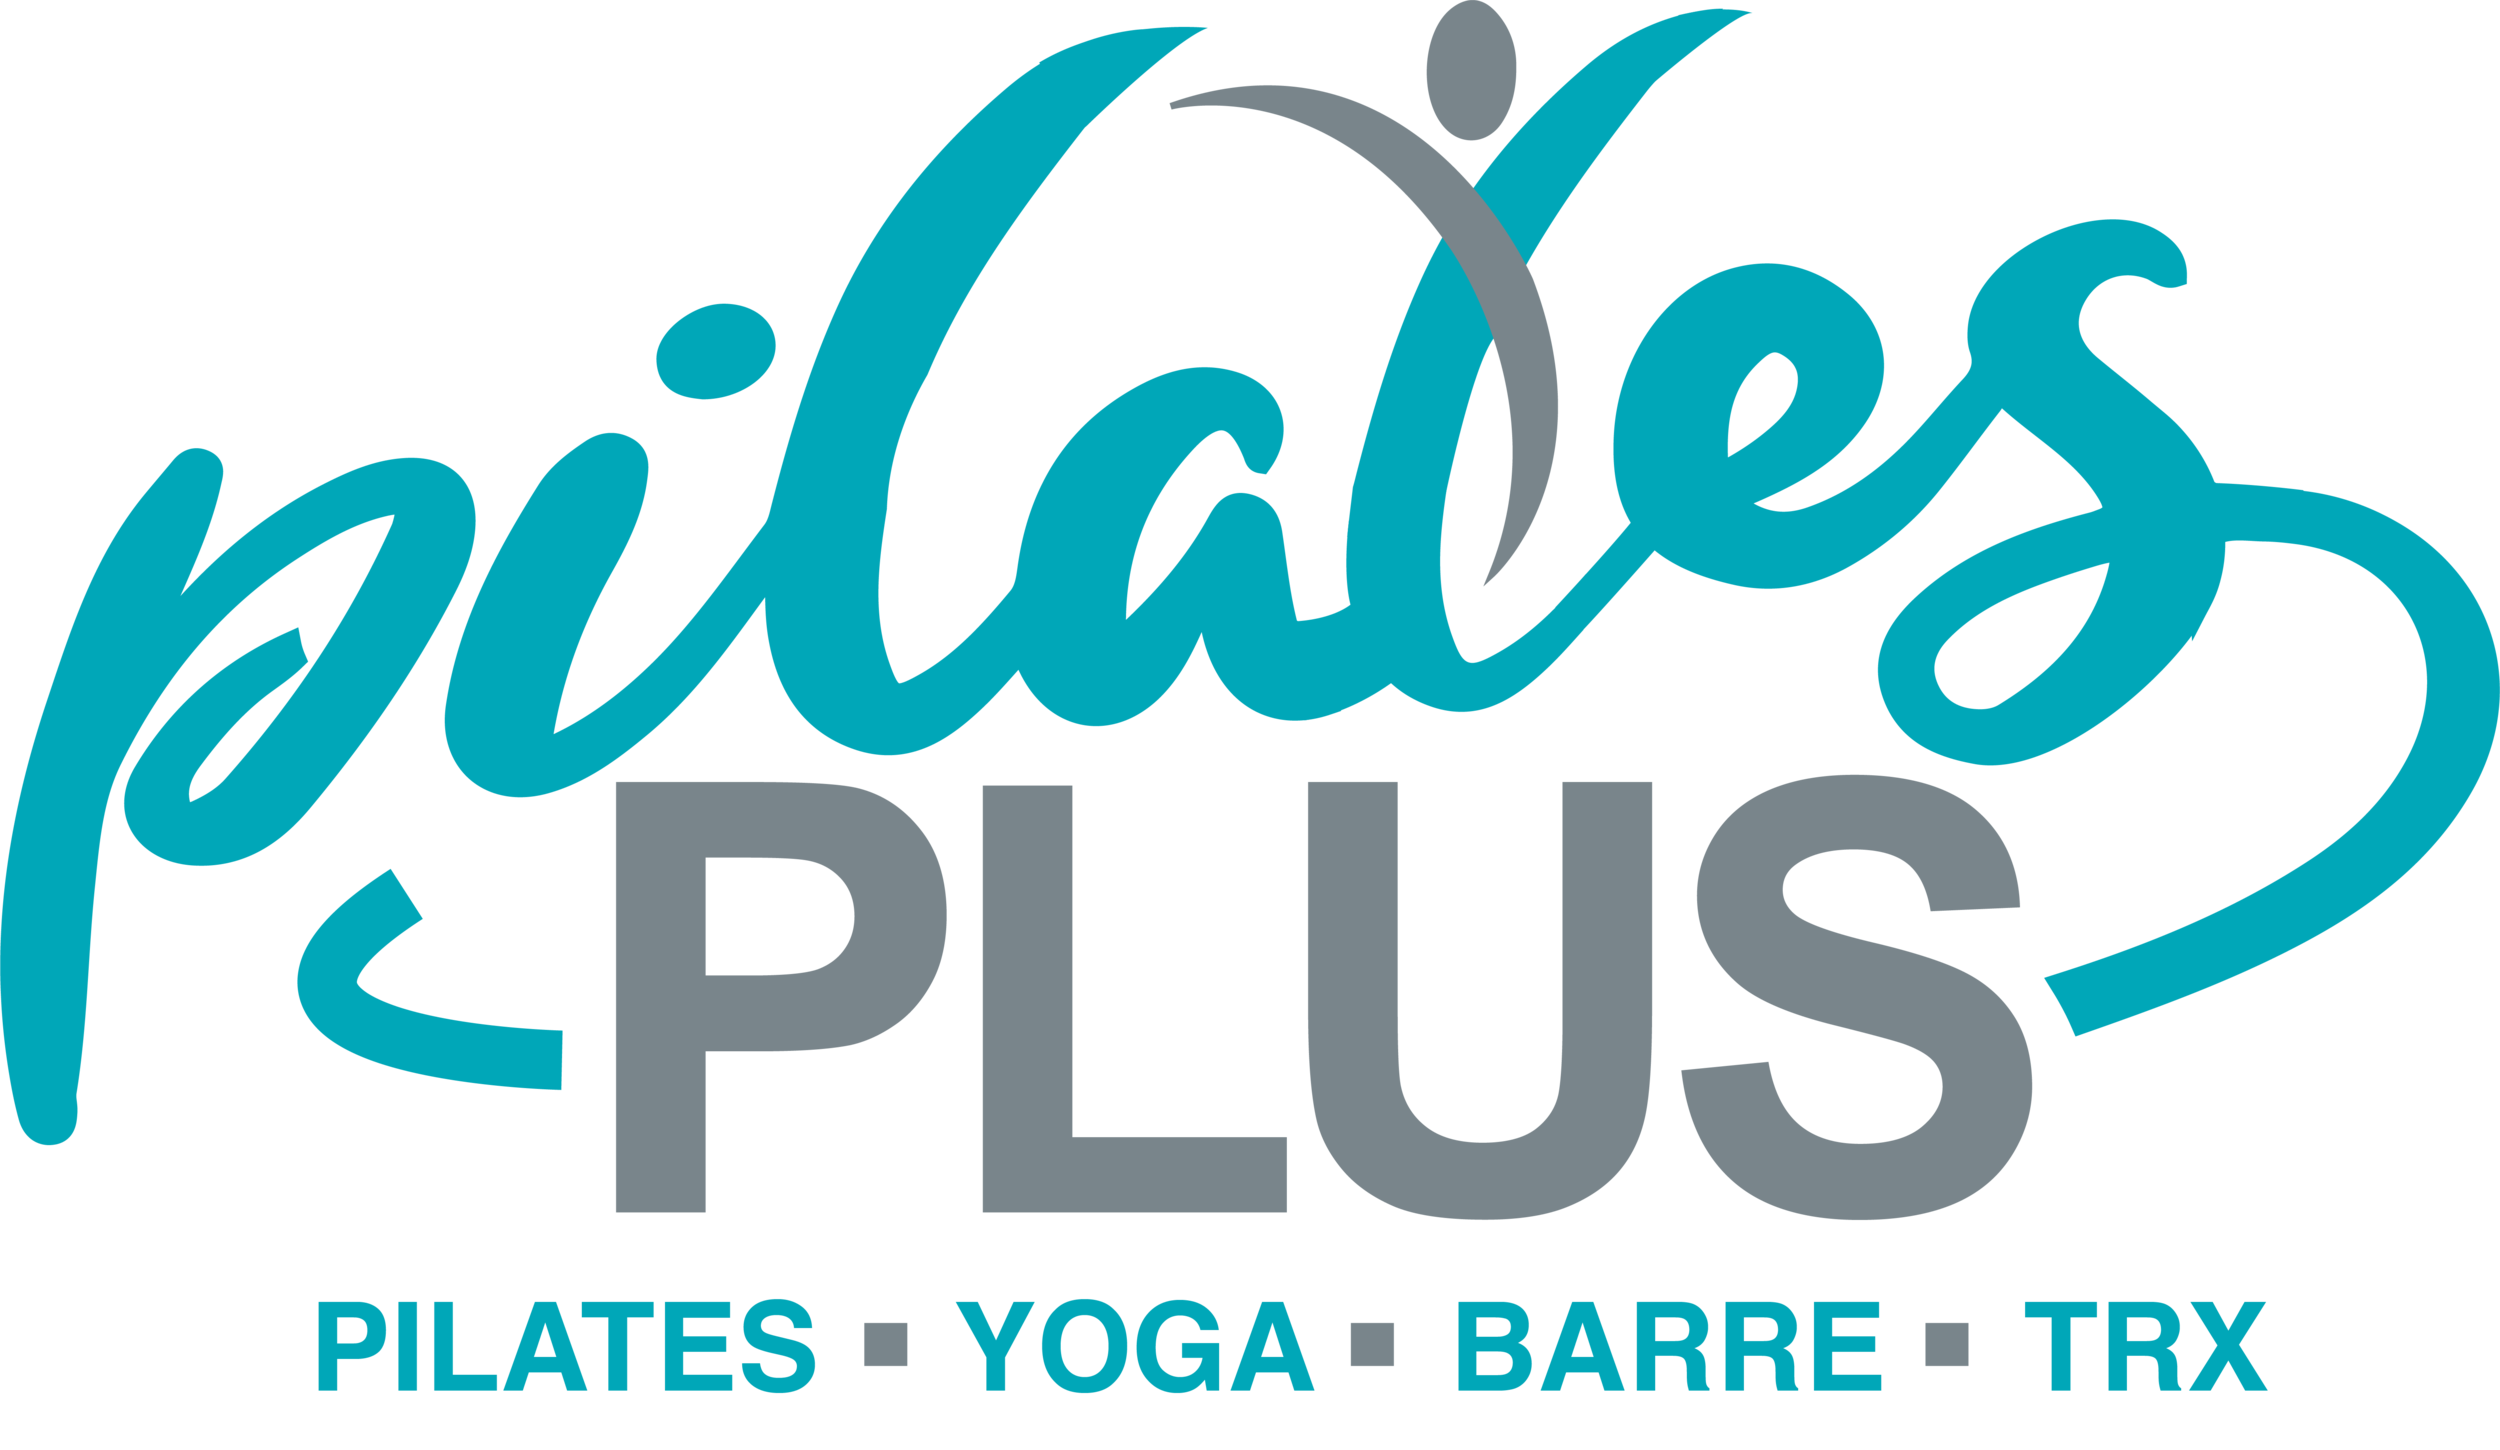 pilates_plus_logo_final-01.png